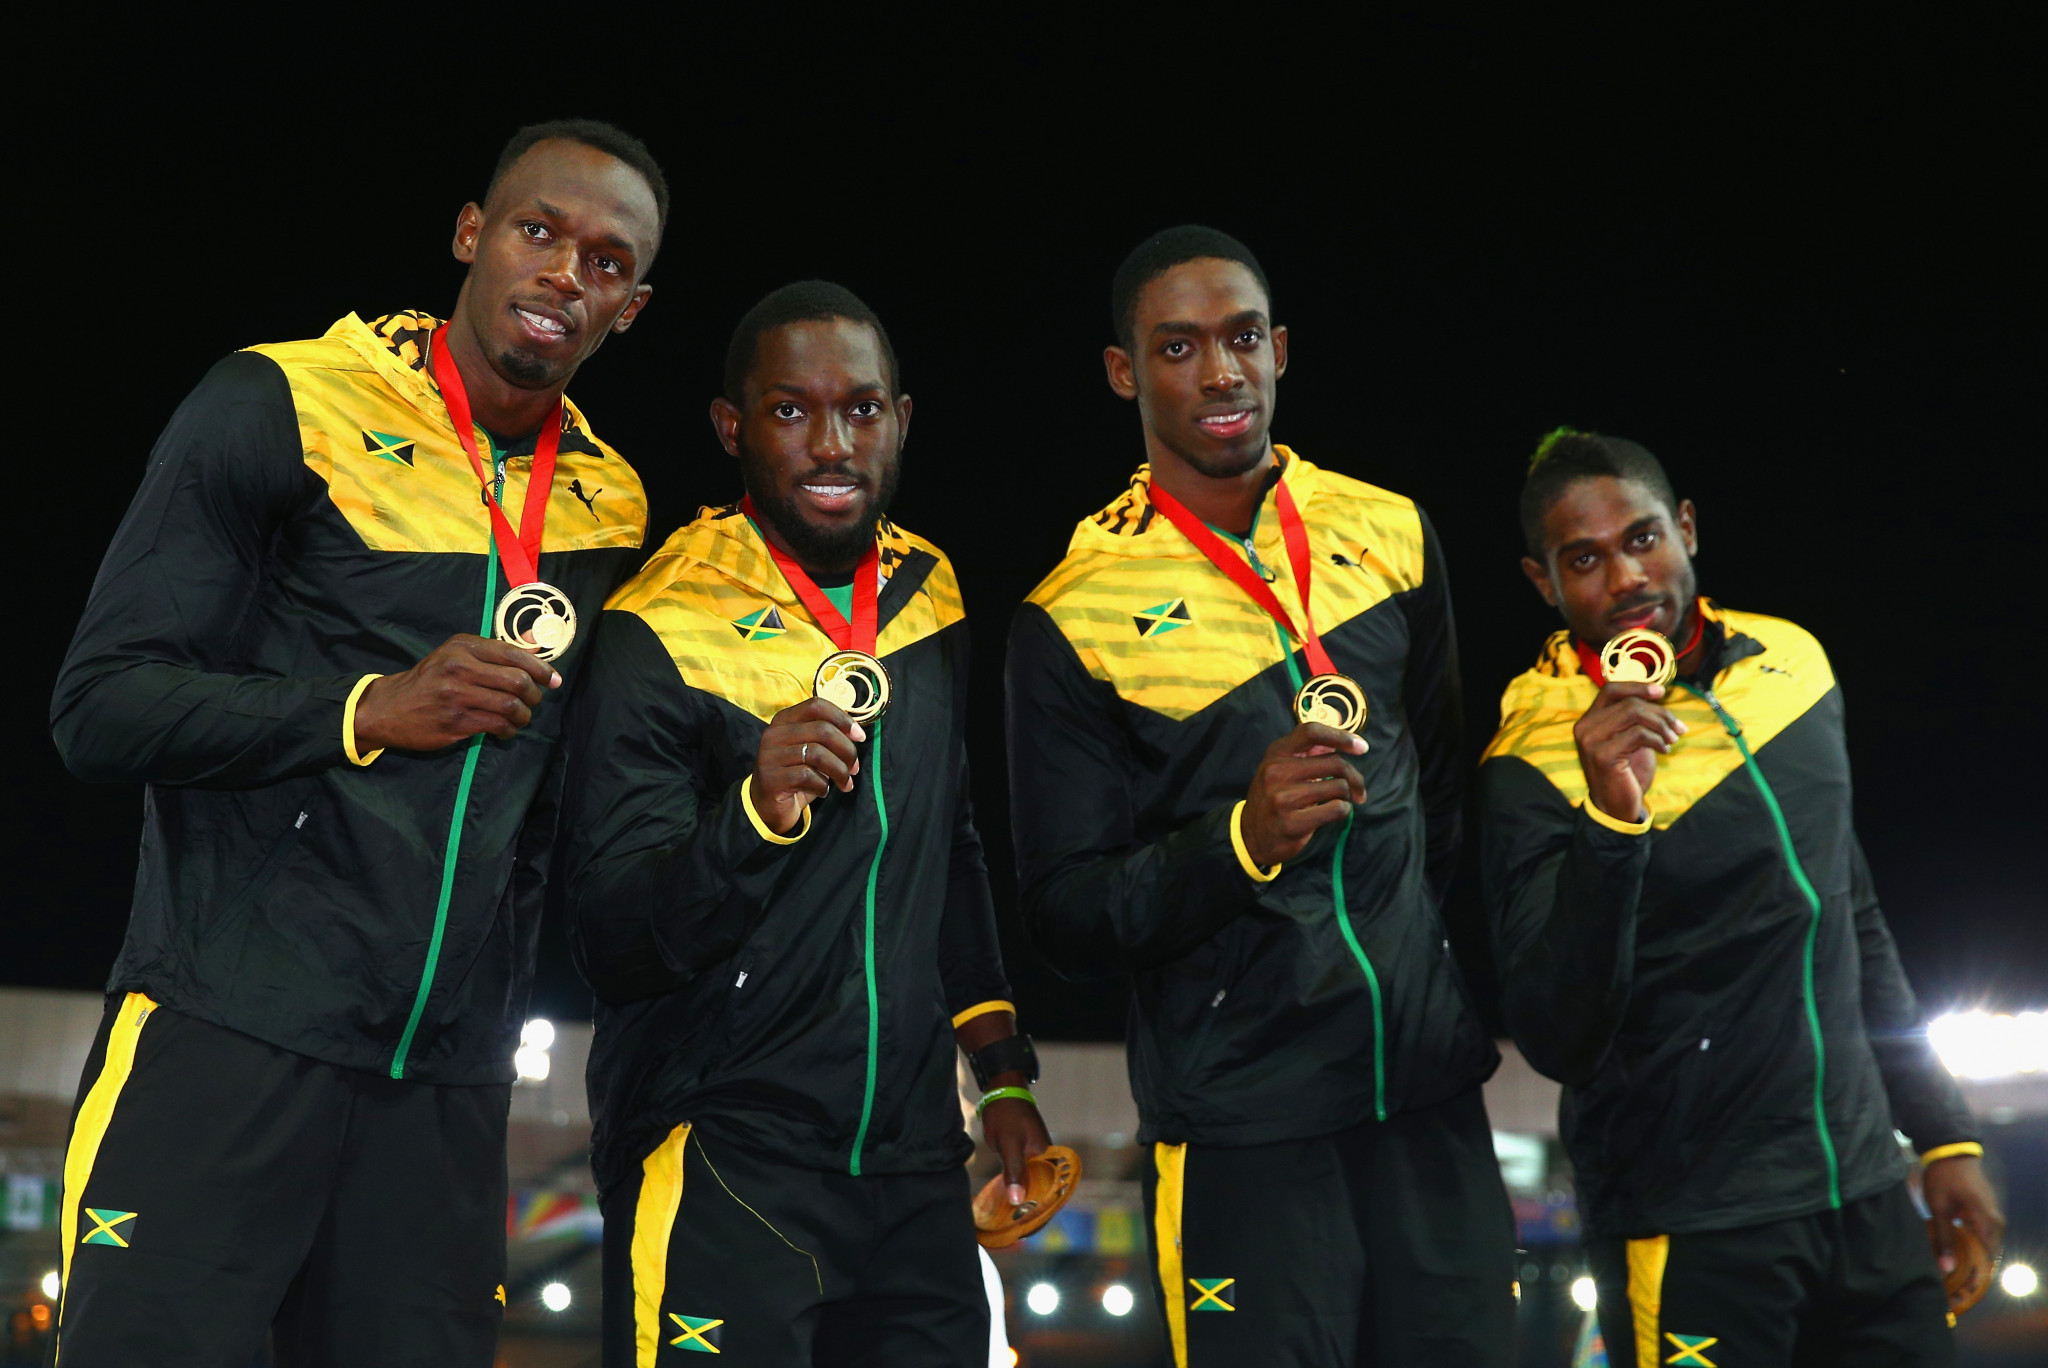 Jason Livermore, right, won a Commonwealth Games gold medal in the 4x100 metres relay at Glasgow 2014 ©Getty Images